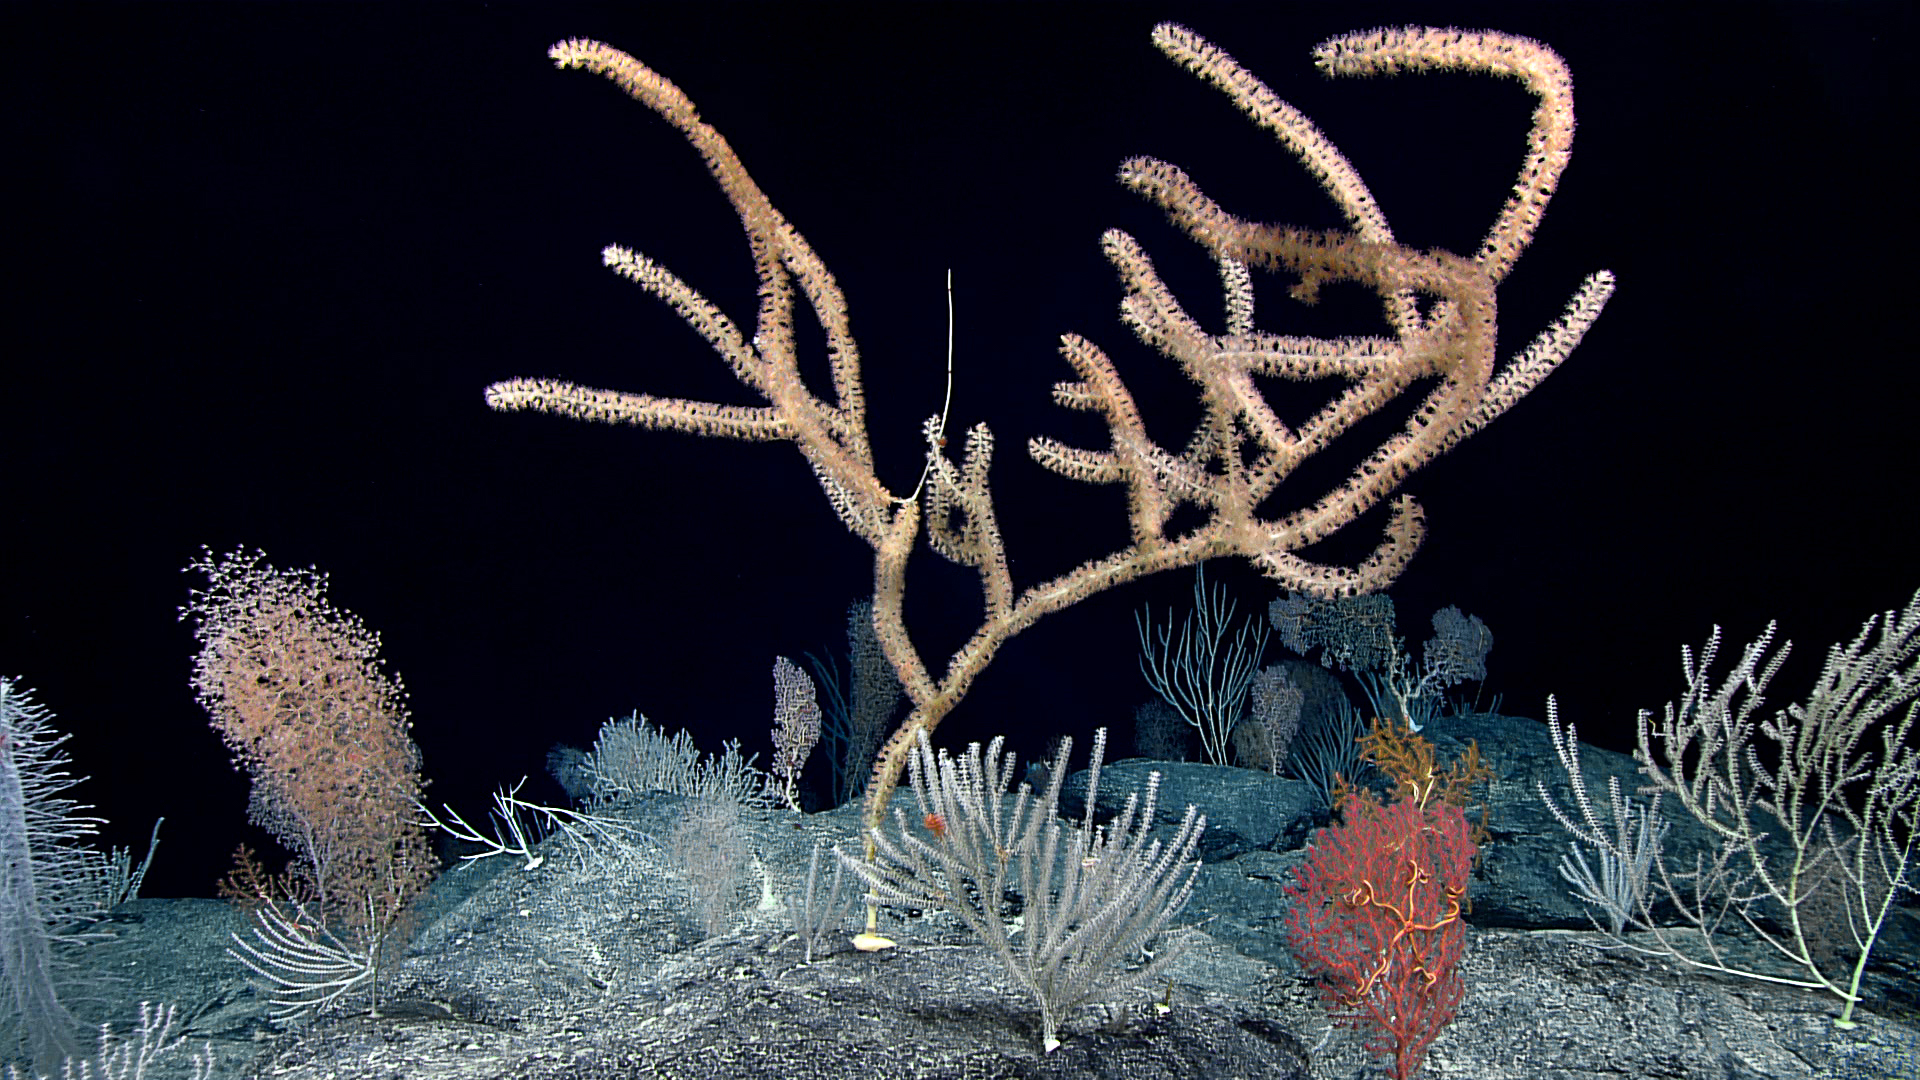 A diverse, dense coral community was present throughout the dive at Debussy Seamount. Several colonies were very large, indicating a stable environment for many years. Credit: NOAA OER